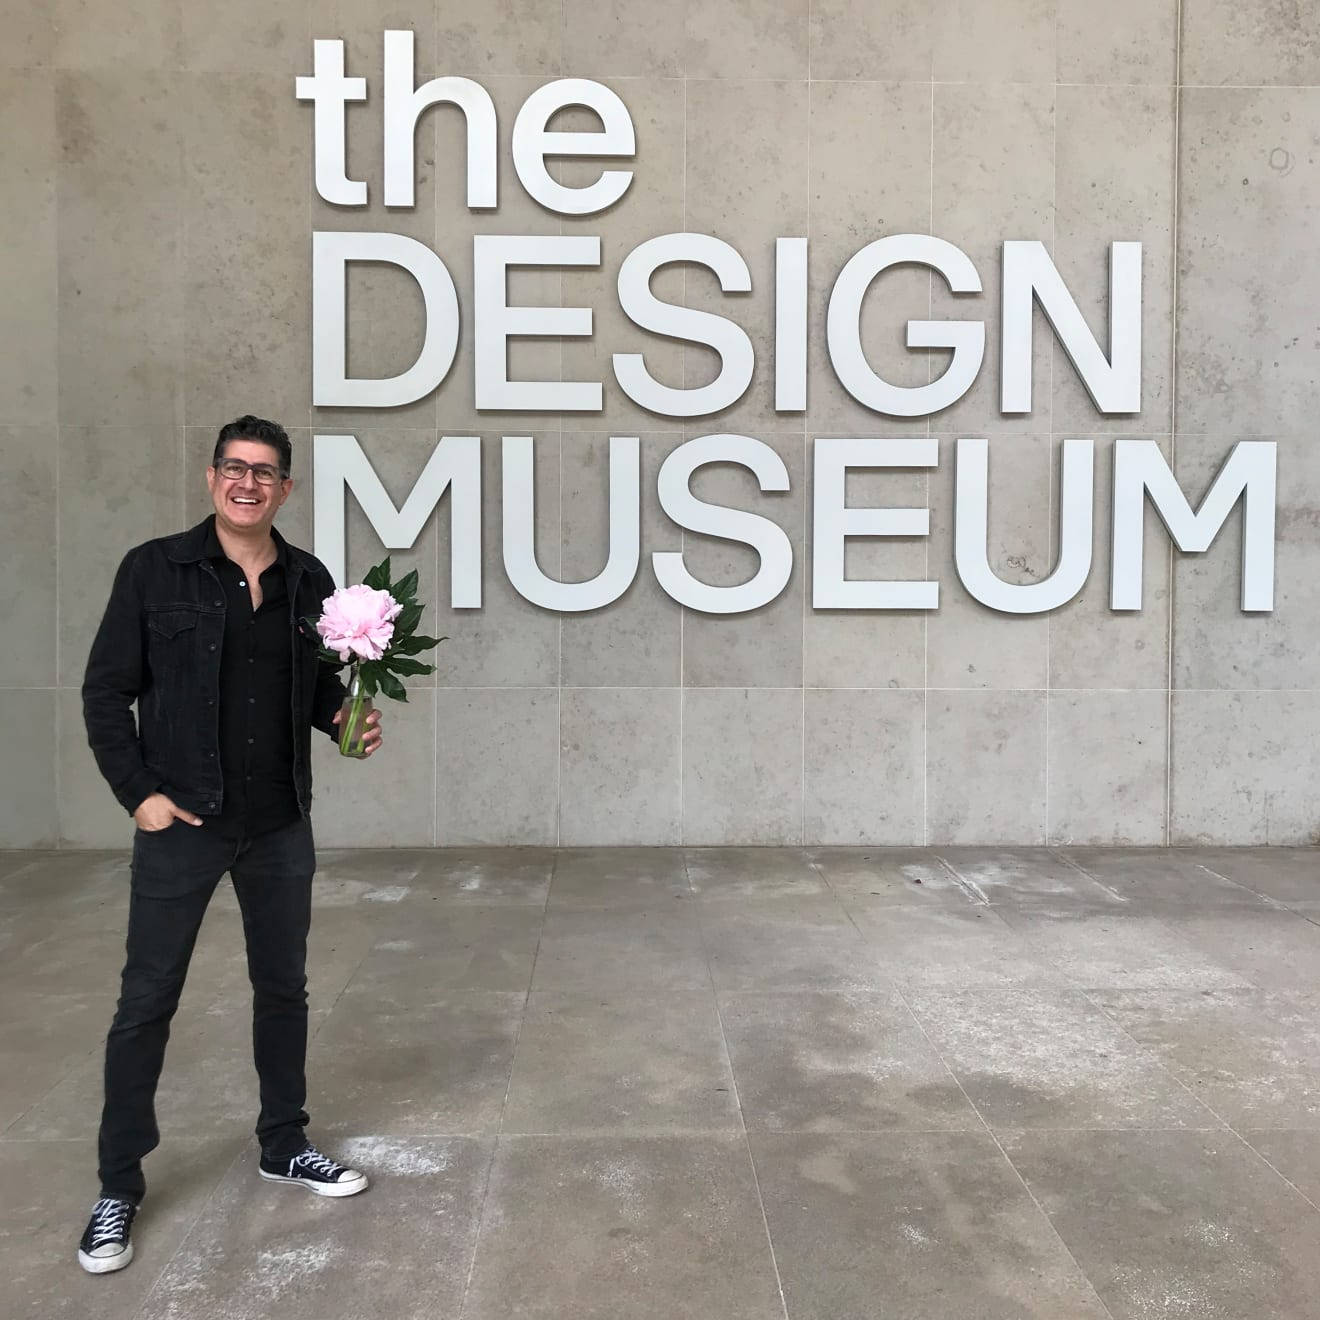 The Design Museum, London